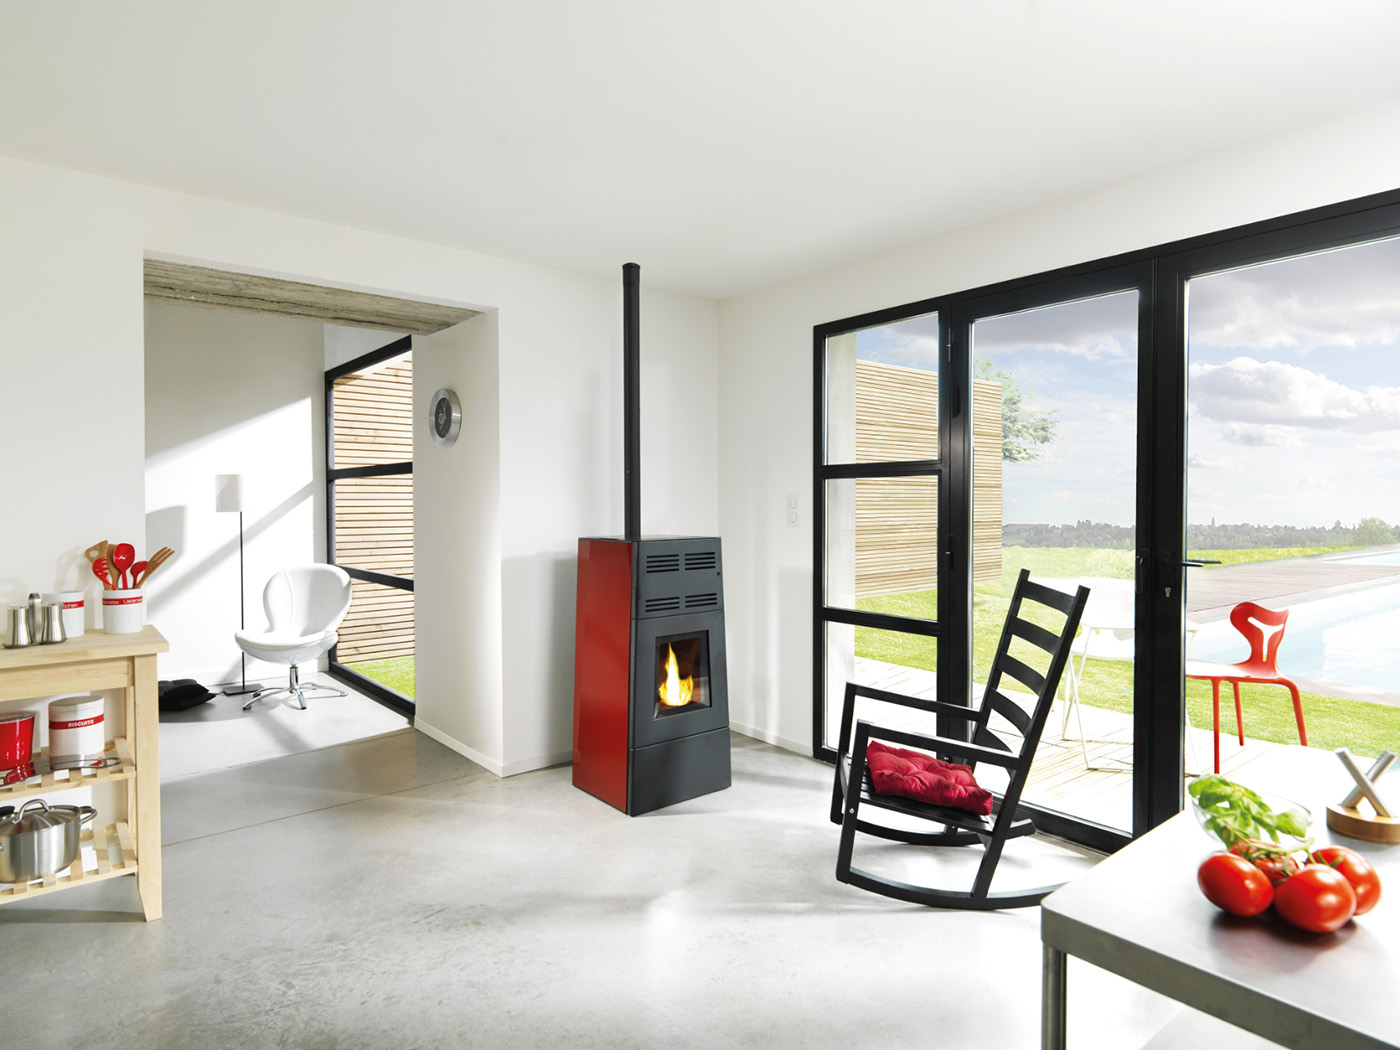 les po les granul s jotul sont chez atre et loisirs. Black Bedroom Furniture Sets. Home Design Ideas